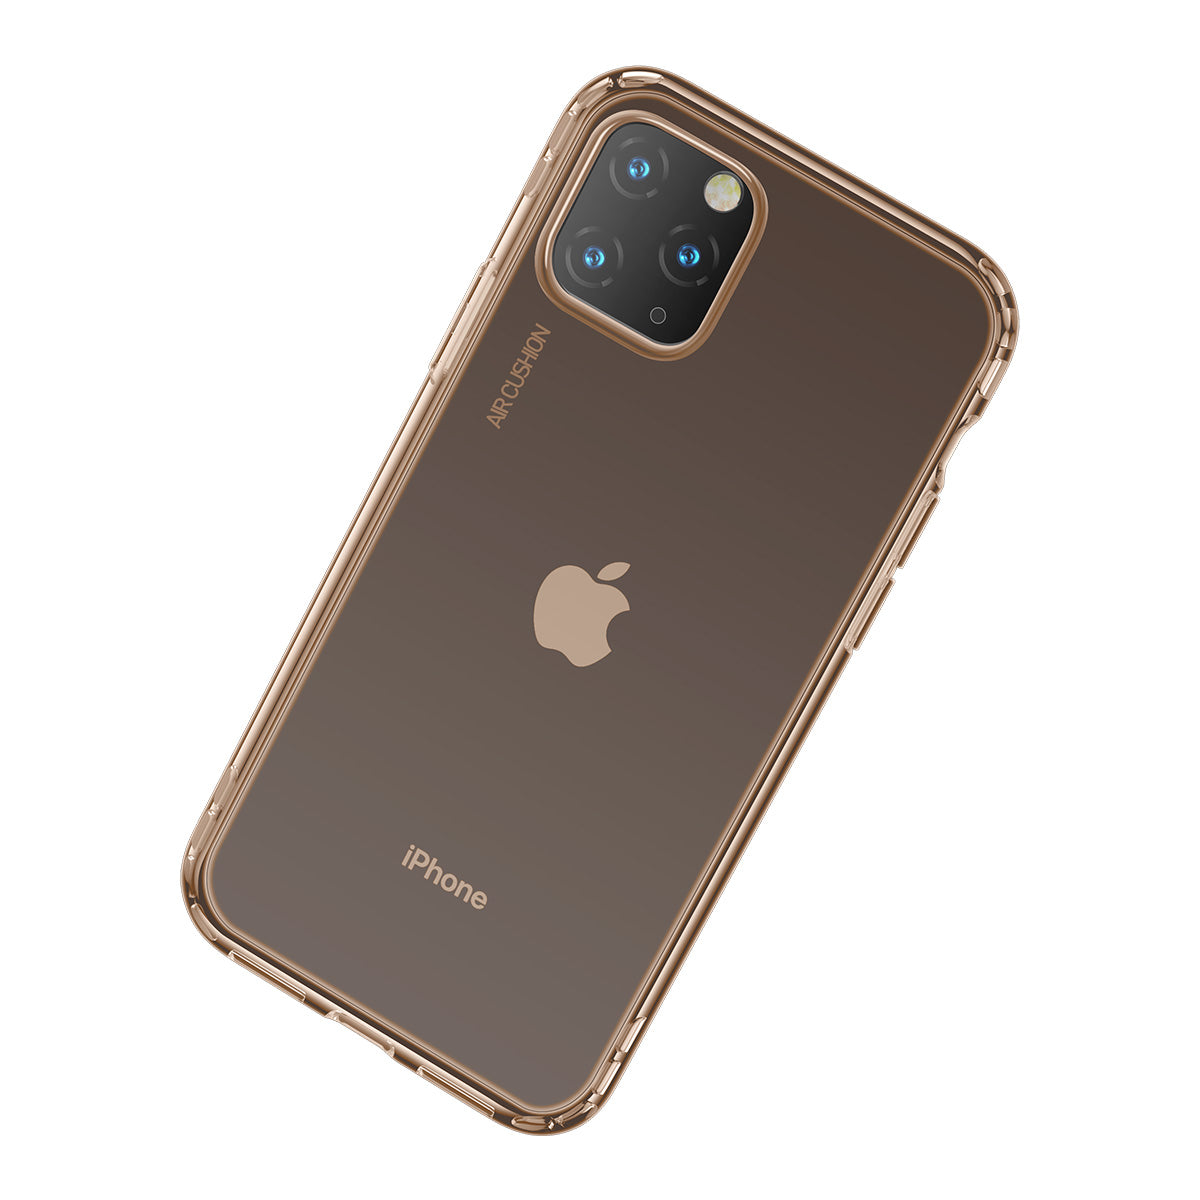 Baseus_Safety_Airbags_Case_iPhone_11_Pro_Max_Case_Transparent_Gold_angled_S78YSRQI5L6P.jpg